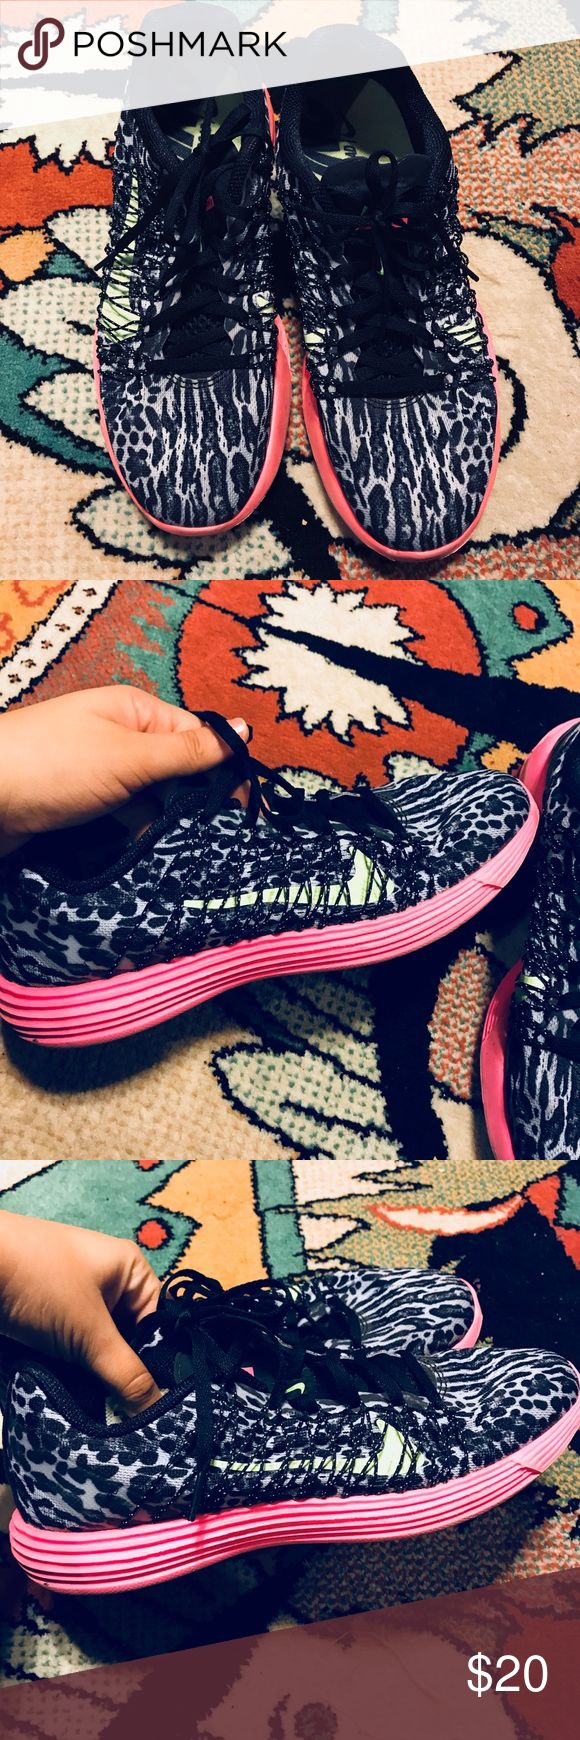 Leopard print nikes Black and gray nikes with mesh on the side, green symbol, and pink soles.  Good used condition, signs of wear pictured Nike Shoes Athletic Shoes